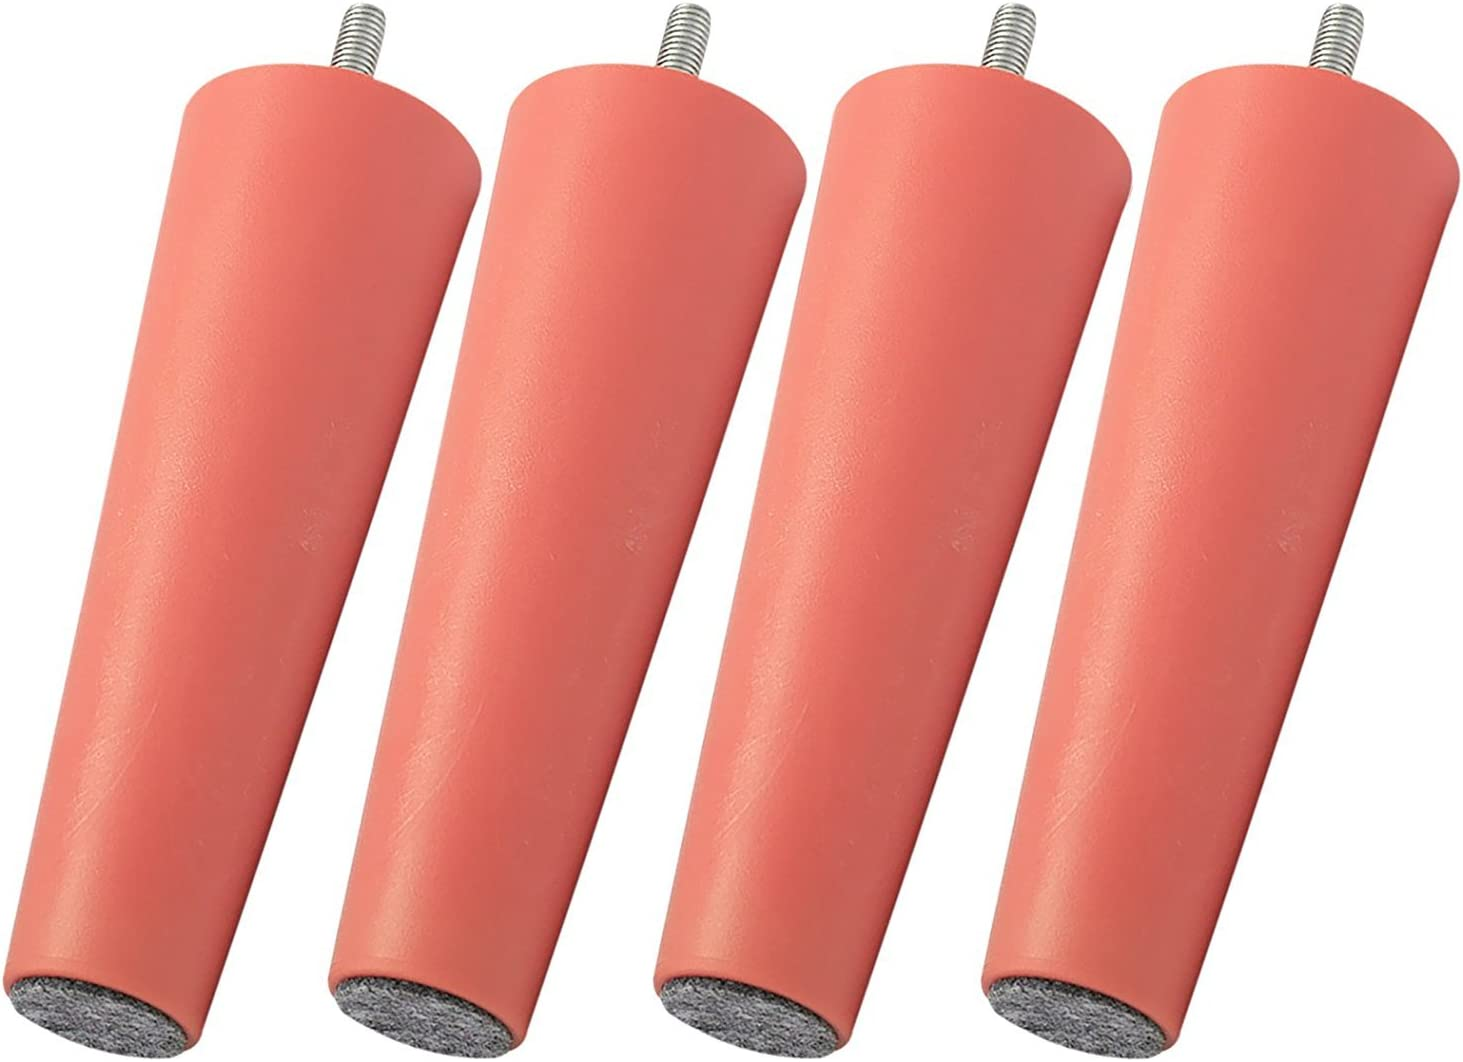 LEGHEADS 6 Inch M8 IKEA Replacement Furniture Legs, Superior Quality Couch Legs, Sofa Legs, Bed Risers - M8 / 8mm (Metric/IKEA) 4 pieces